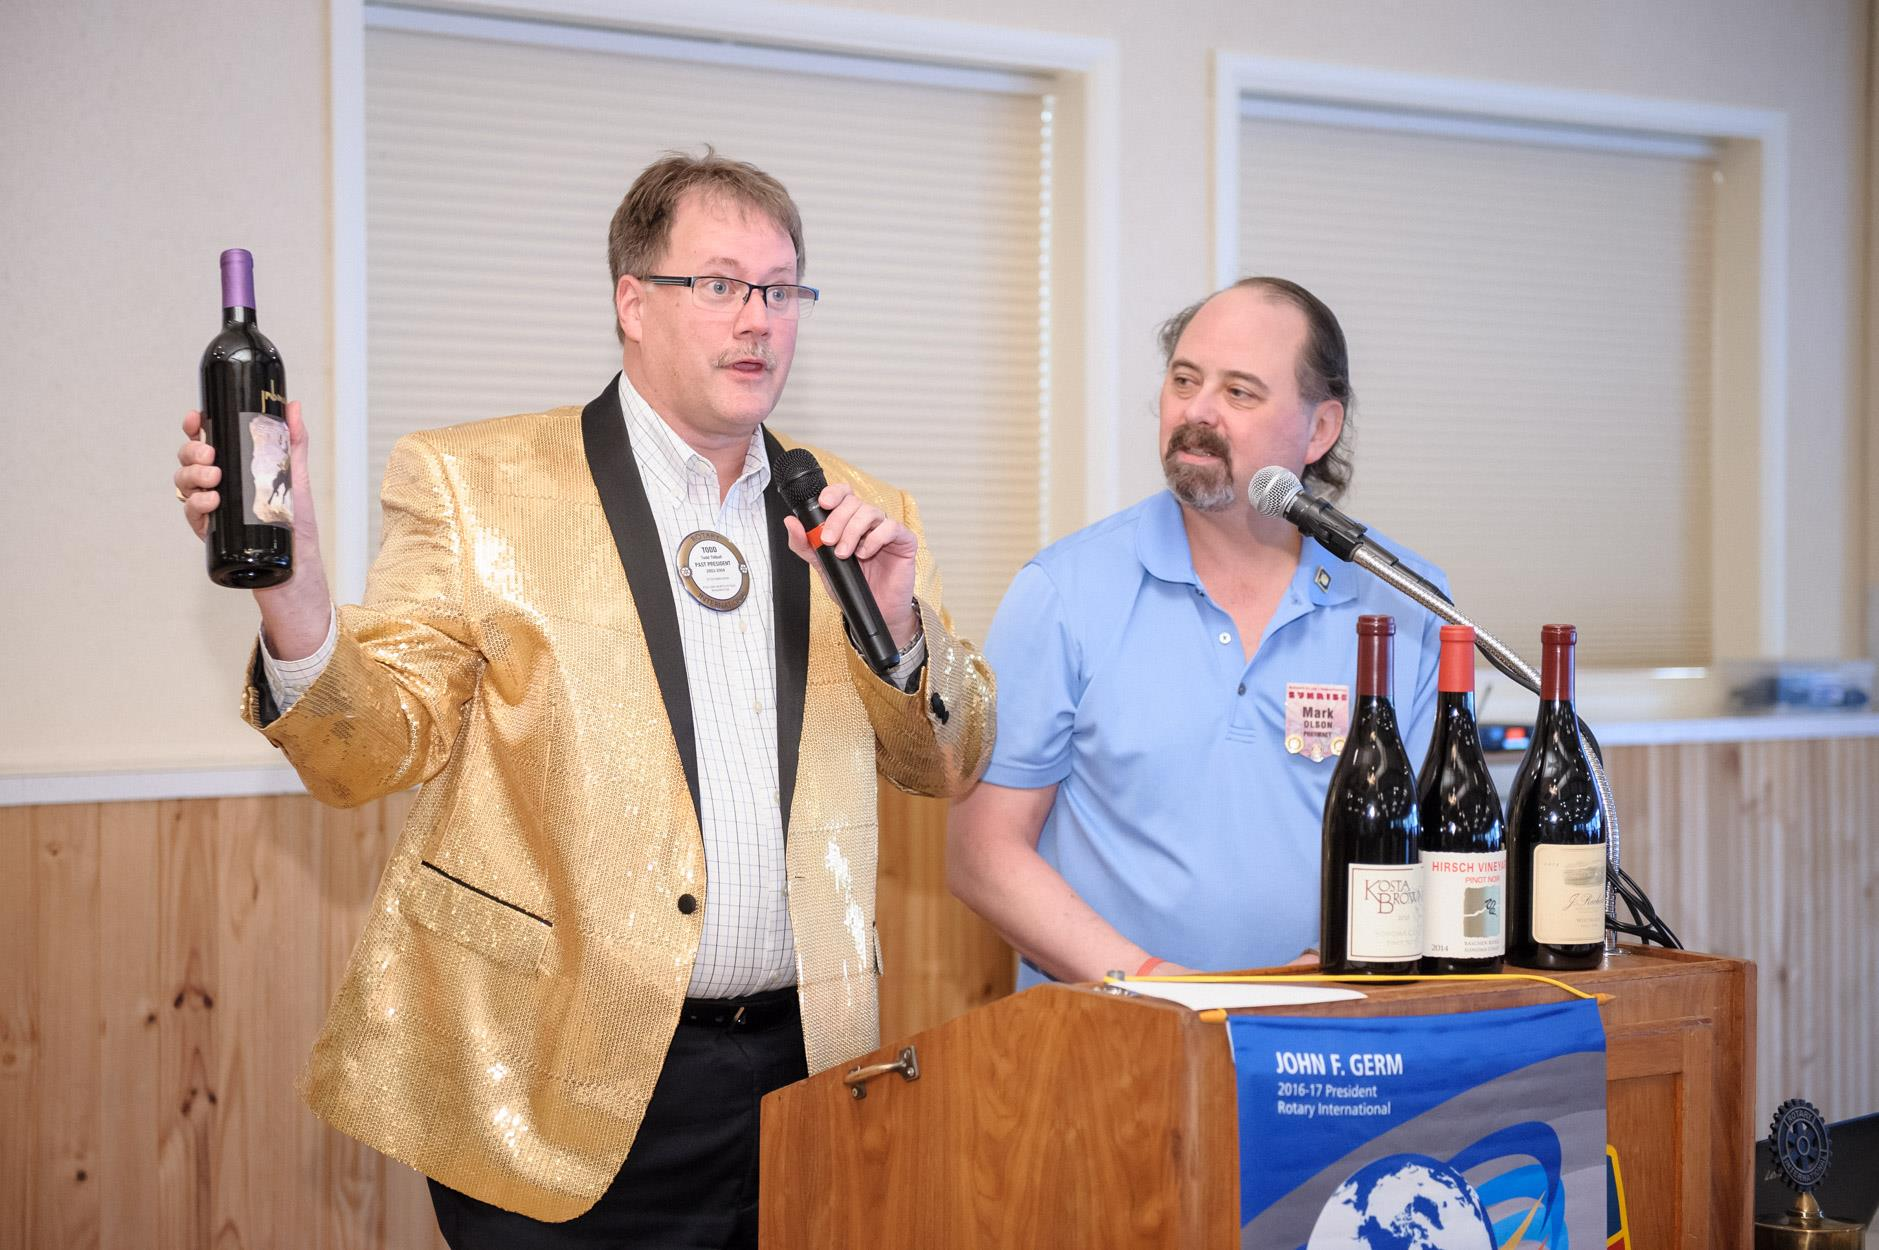 Wine auction raises more than $1,000